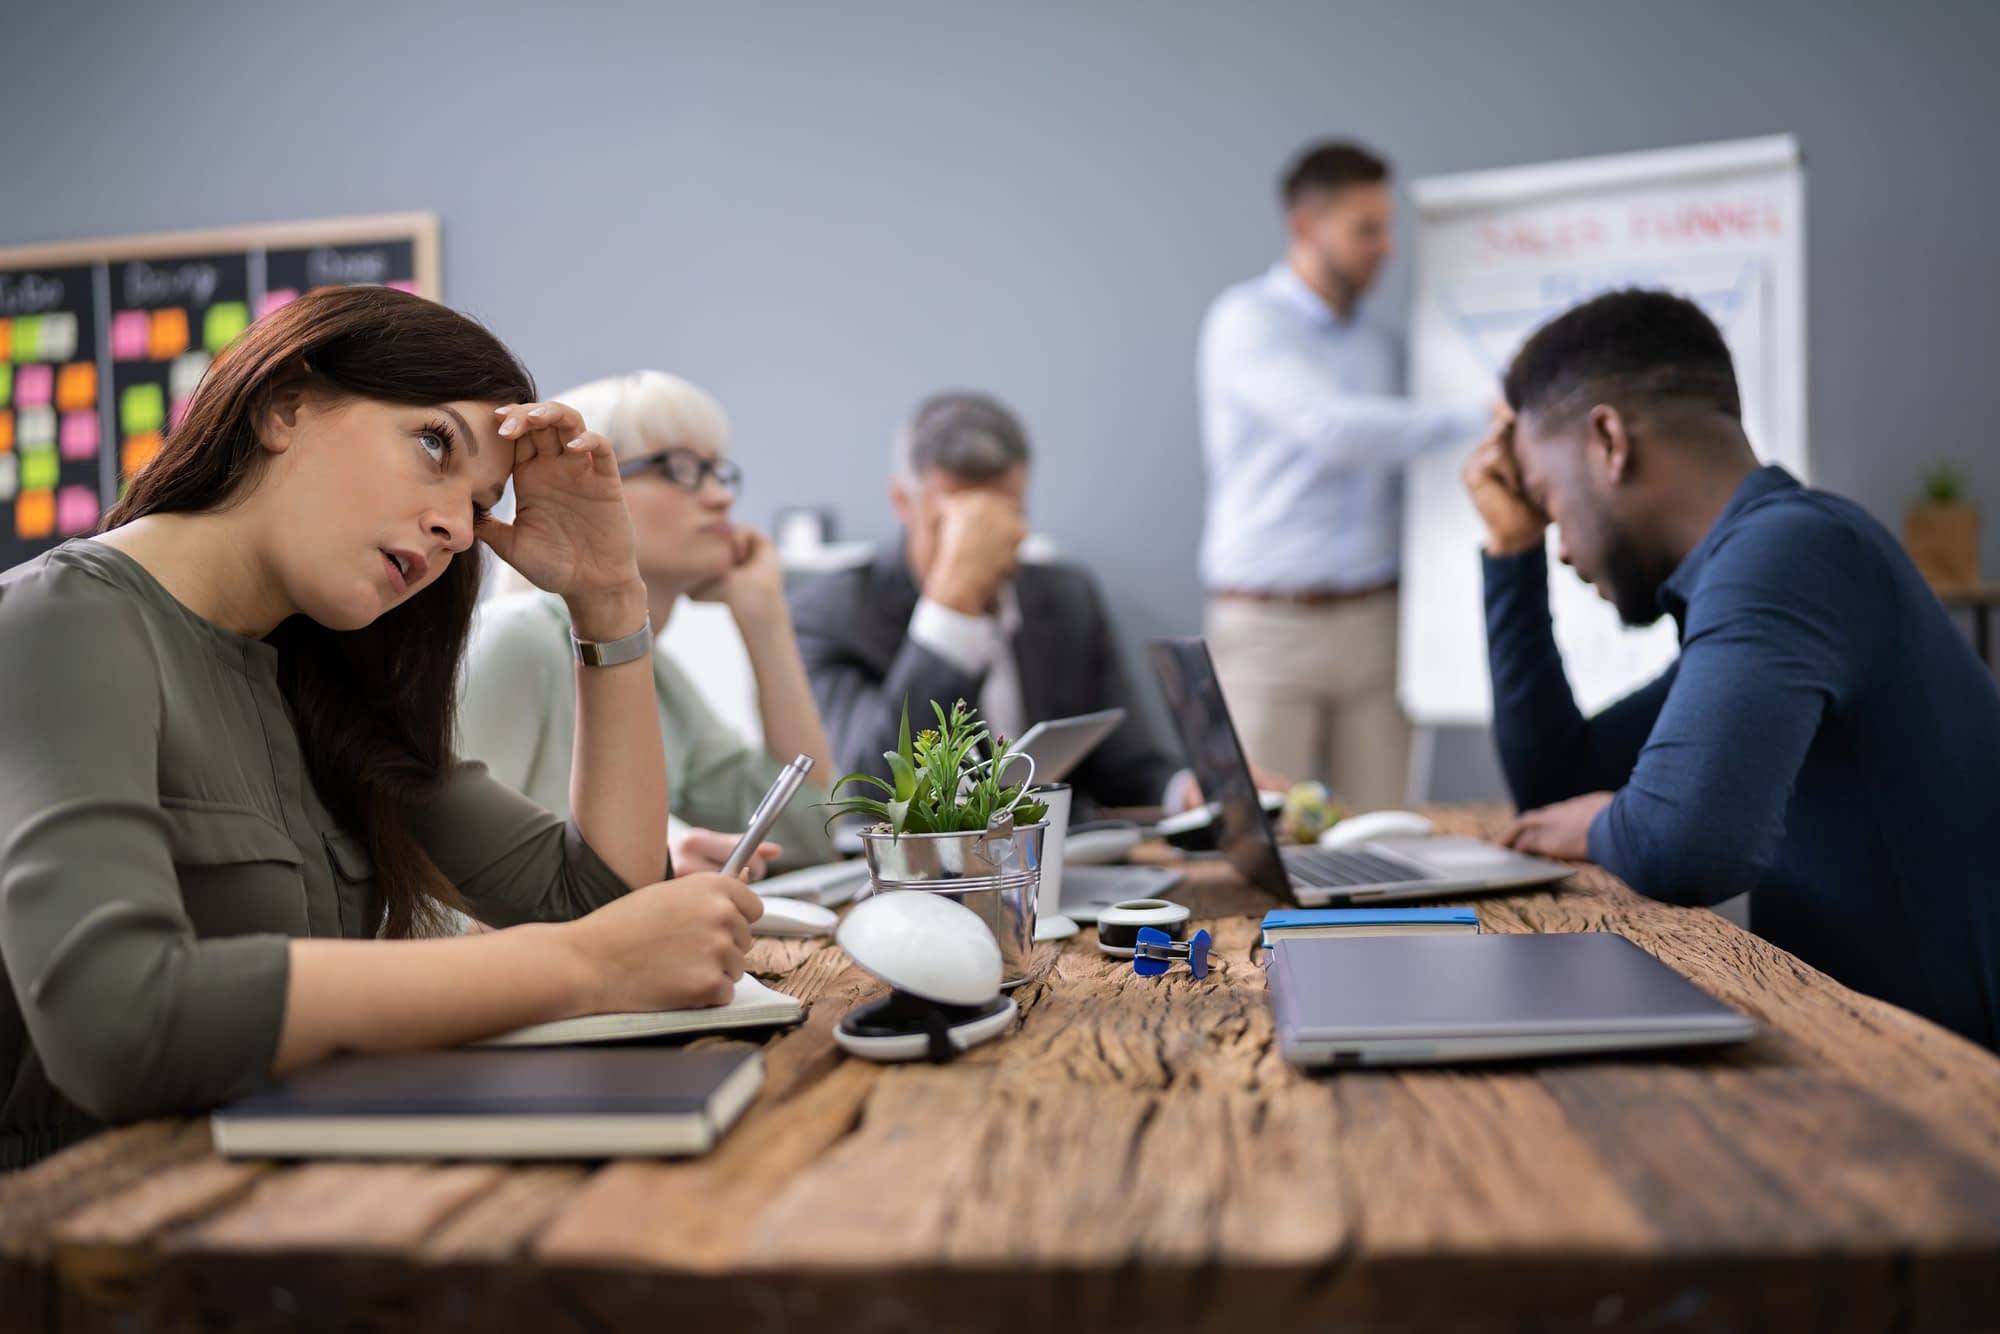 Business team sitting in a meeting look like they need culture change management.